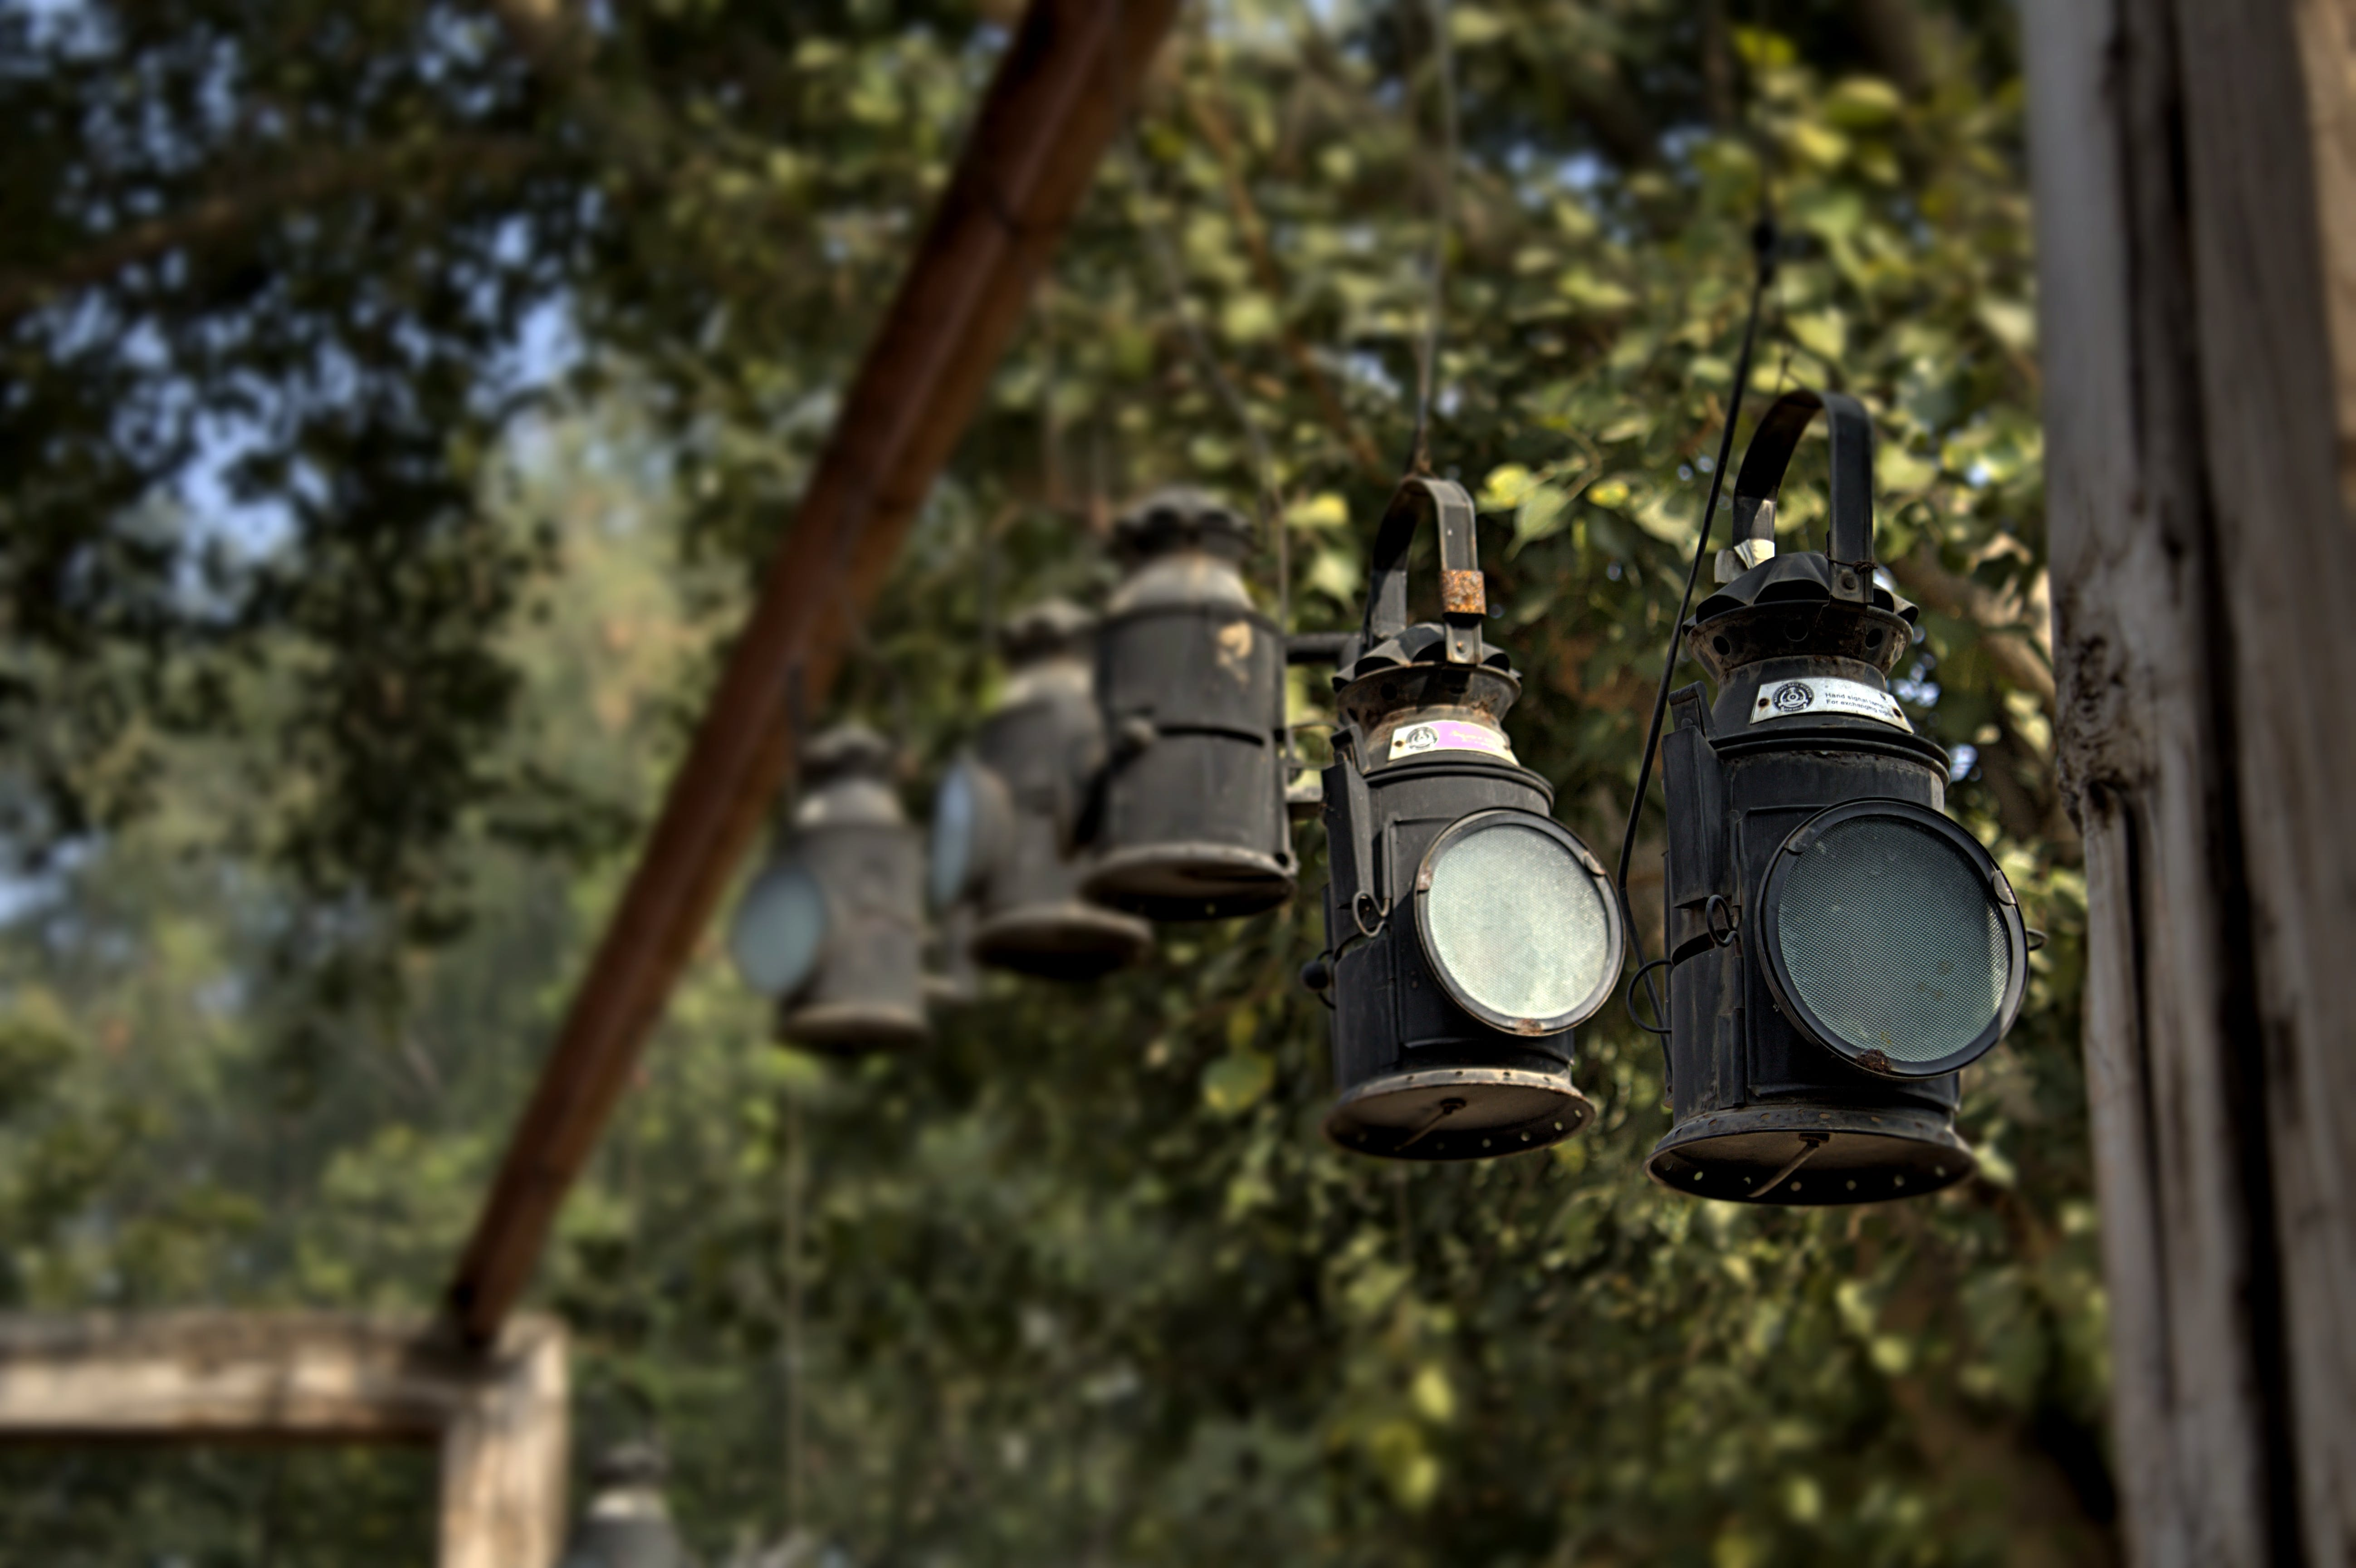 Black Metal Lanterns Hanged in Brown Wooden Frame